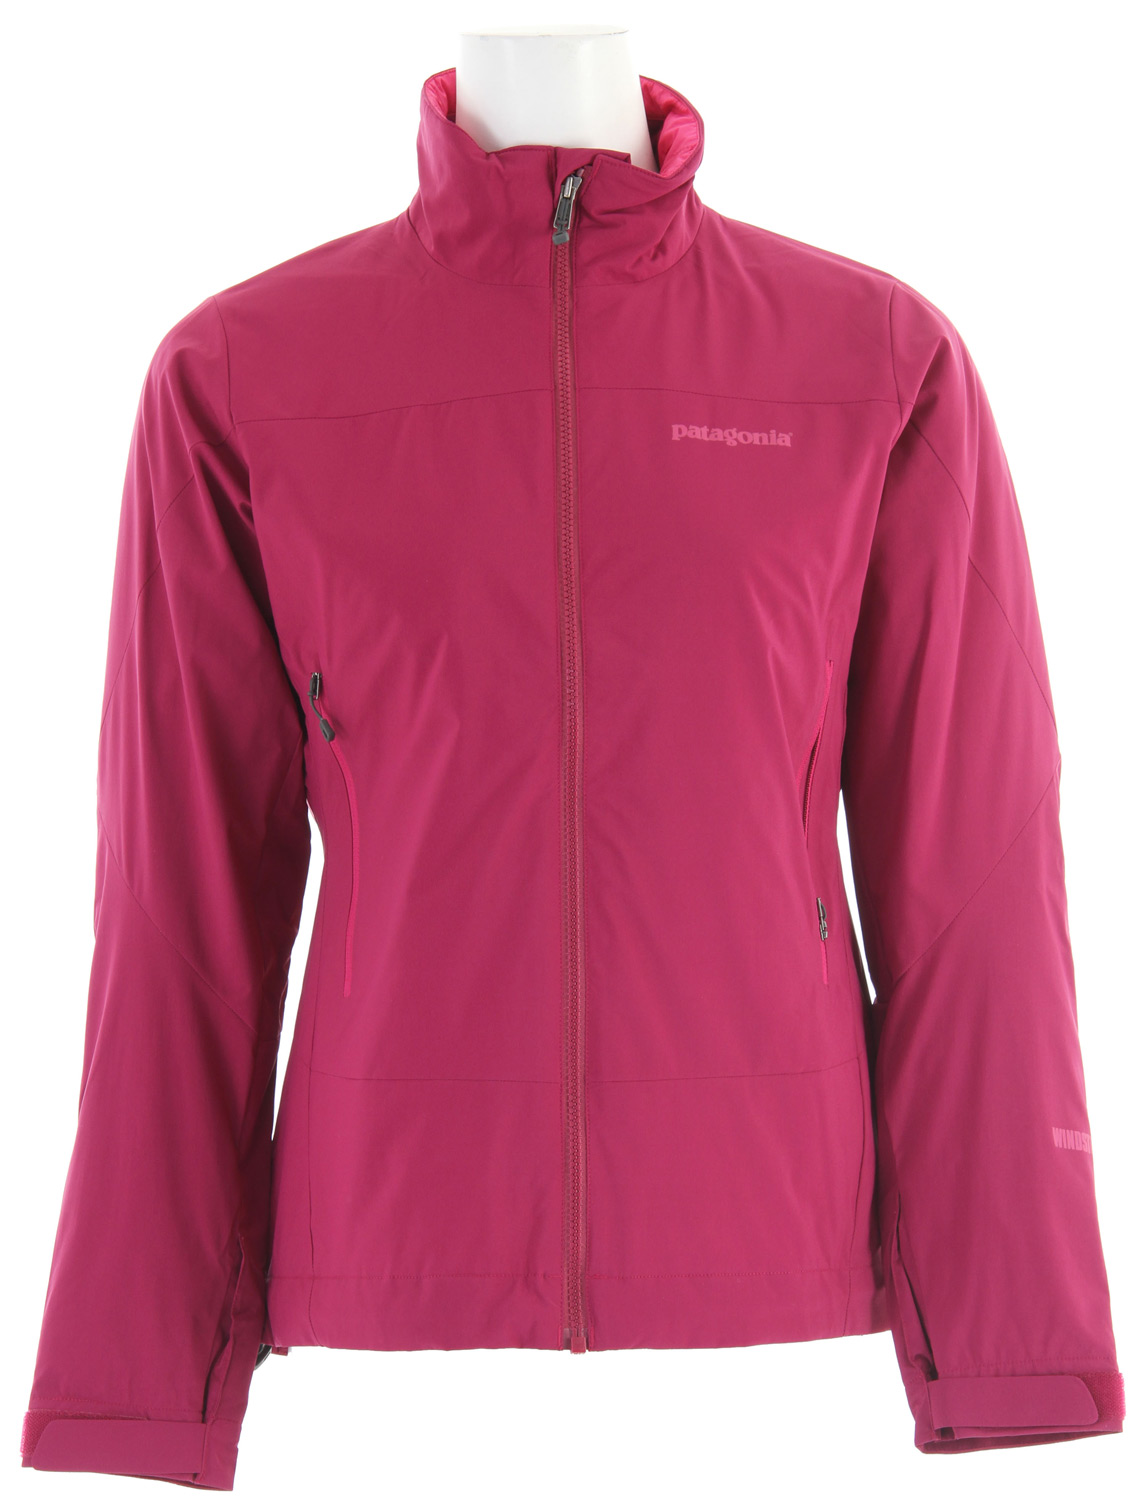 A lightweight insulated jacket with low bulk, the Patagonia Solar Wind Jacket combines a nylon WINDSTOPPERA(R) insulated Shell exterior with 60g PrimaLoft ECO insulation for total warmth and wind protection.Key Features of the Patagonia Solar Wind Jacket: WINDSTOPPER insulated Shell fabric combined with PrimaLoft Eco insulation is warm, light, compressible and highly weather-resistant interior quilting stabilizes insulation Pockets: Harness- and pack-compatible chest pocket configuration with reverse-coil zippers; internal zippered security pocket Touch Point System embeds cord locks in the hood and hem for quick adjustments to seal out rain and snow (patented) Cuffs with low-profile closure and pleated gusset Regular fit (15.5 oz) 439g Fabric: Shell: 2.8 oz WINDSTOPPER 100% nylon. Insulation: 60g Primaloft ECO. Lining: 1.4 oz 20-denier 100% polyester ripstop - $161.95